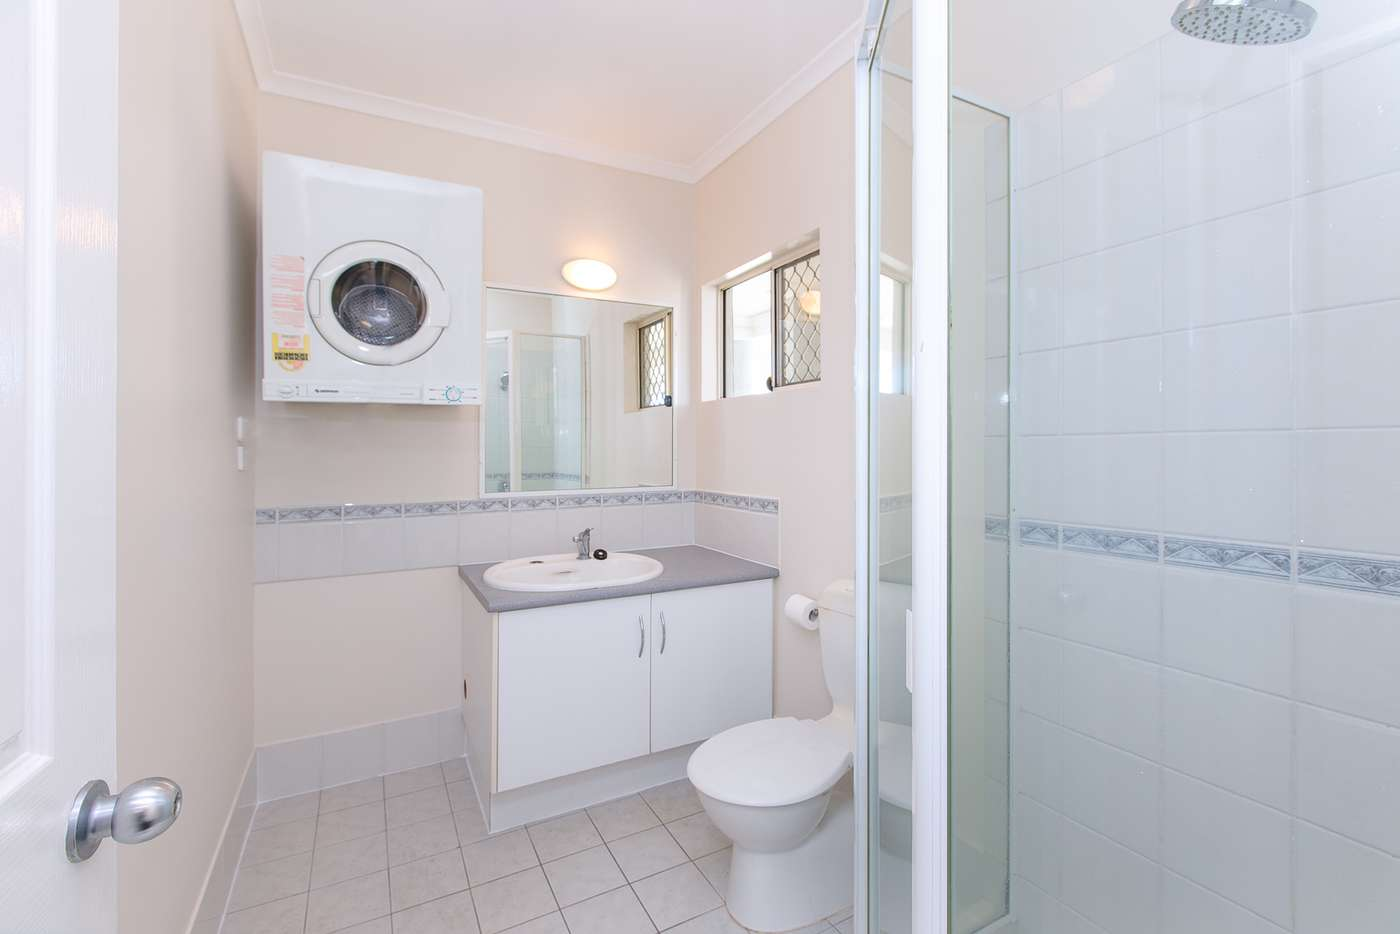 Fifth view of Homely apartment listing, 446 Main Street, Kangaroo Point QLD 4169